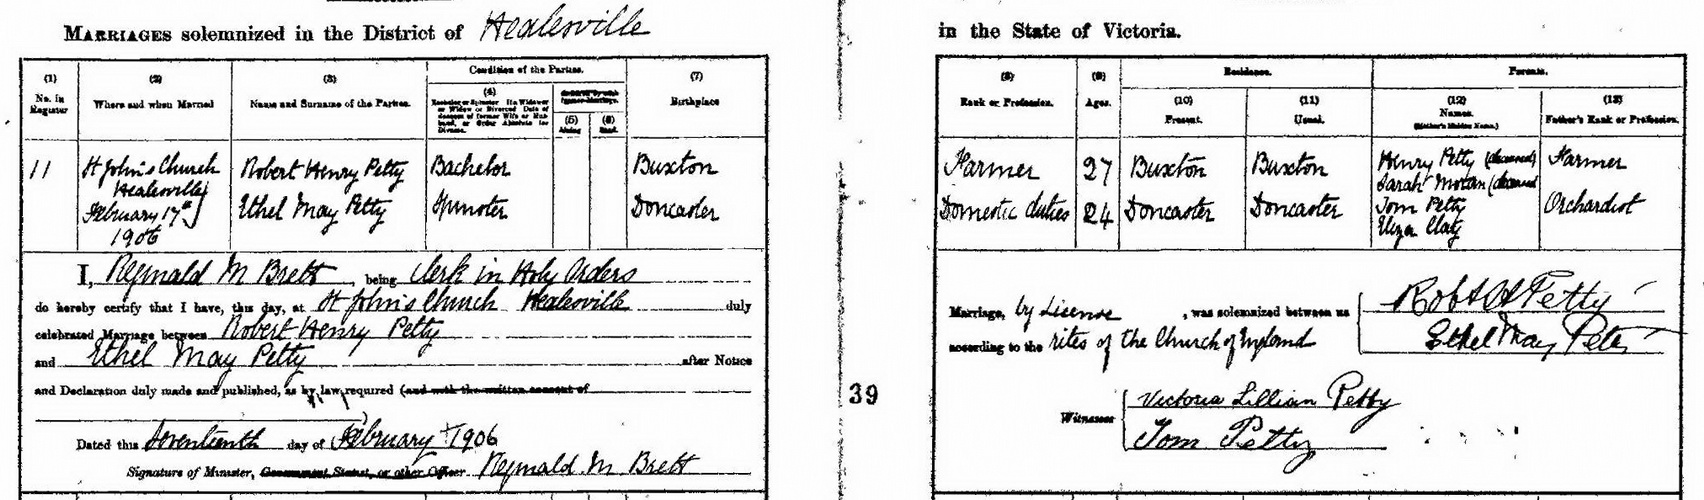 Ethel May Petty and Robert Henry Petty-marriage certificate.jpg